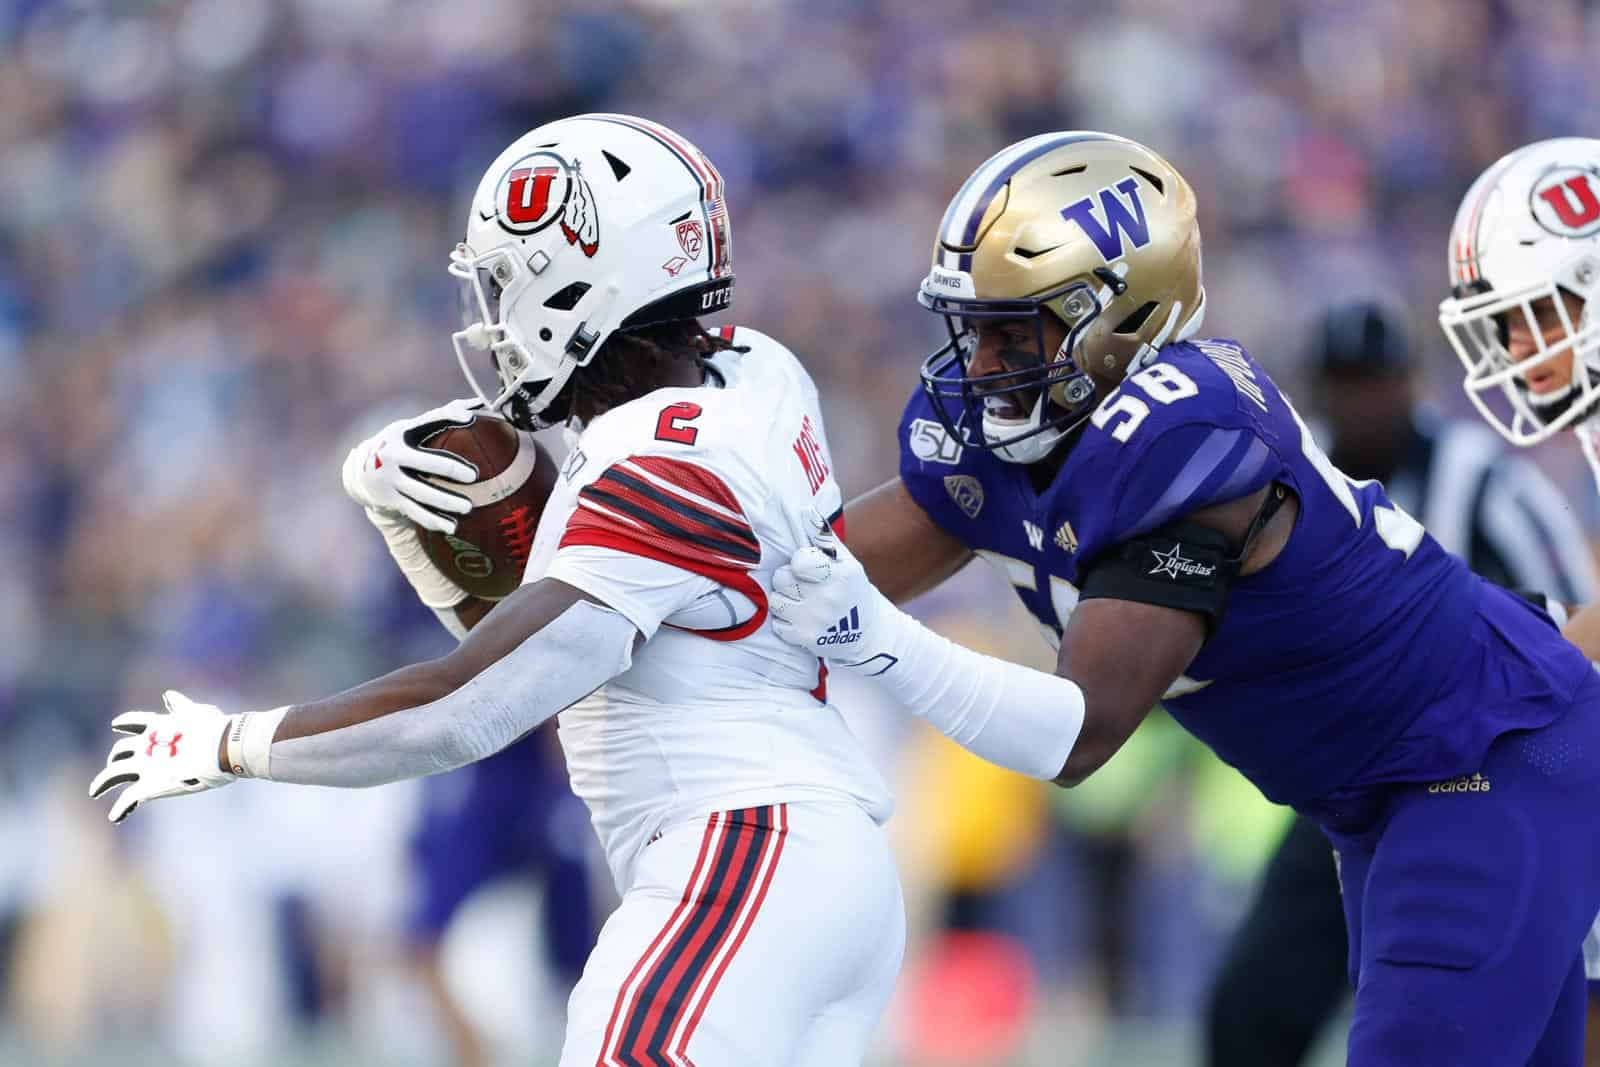 Utah and Washington schedule new game that will be on ESPN